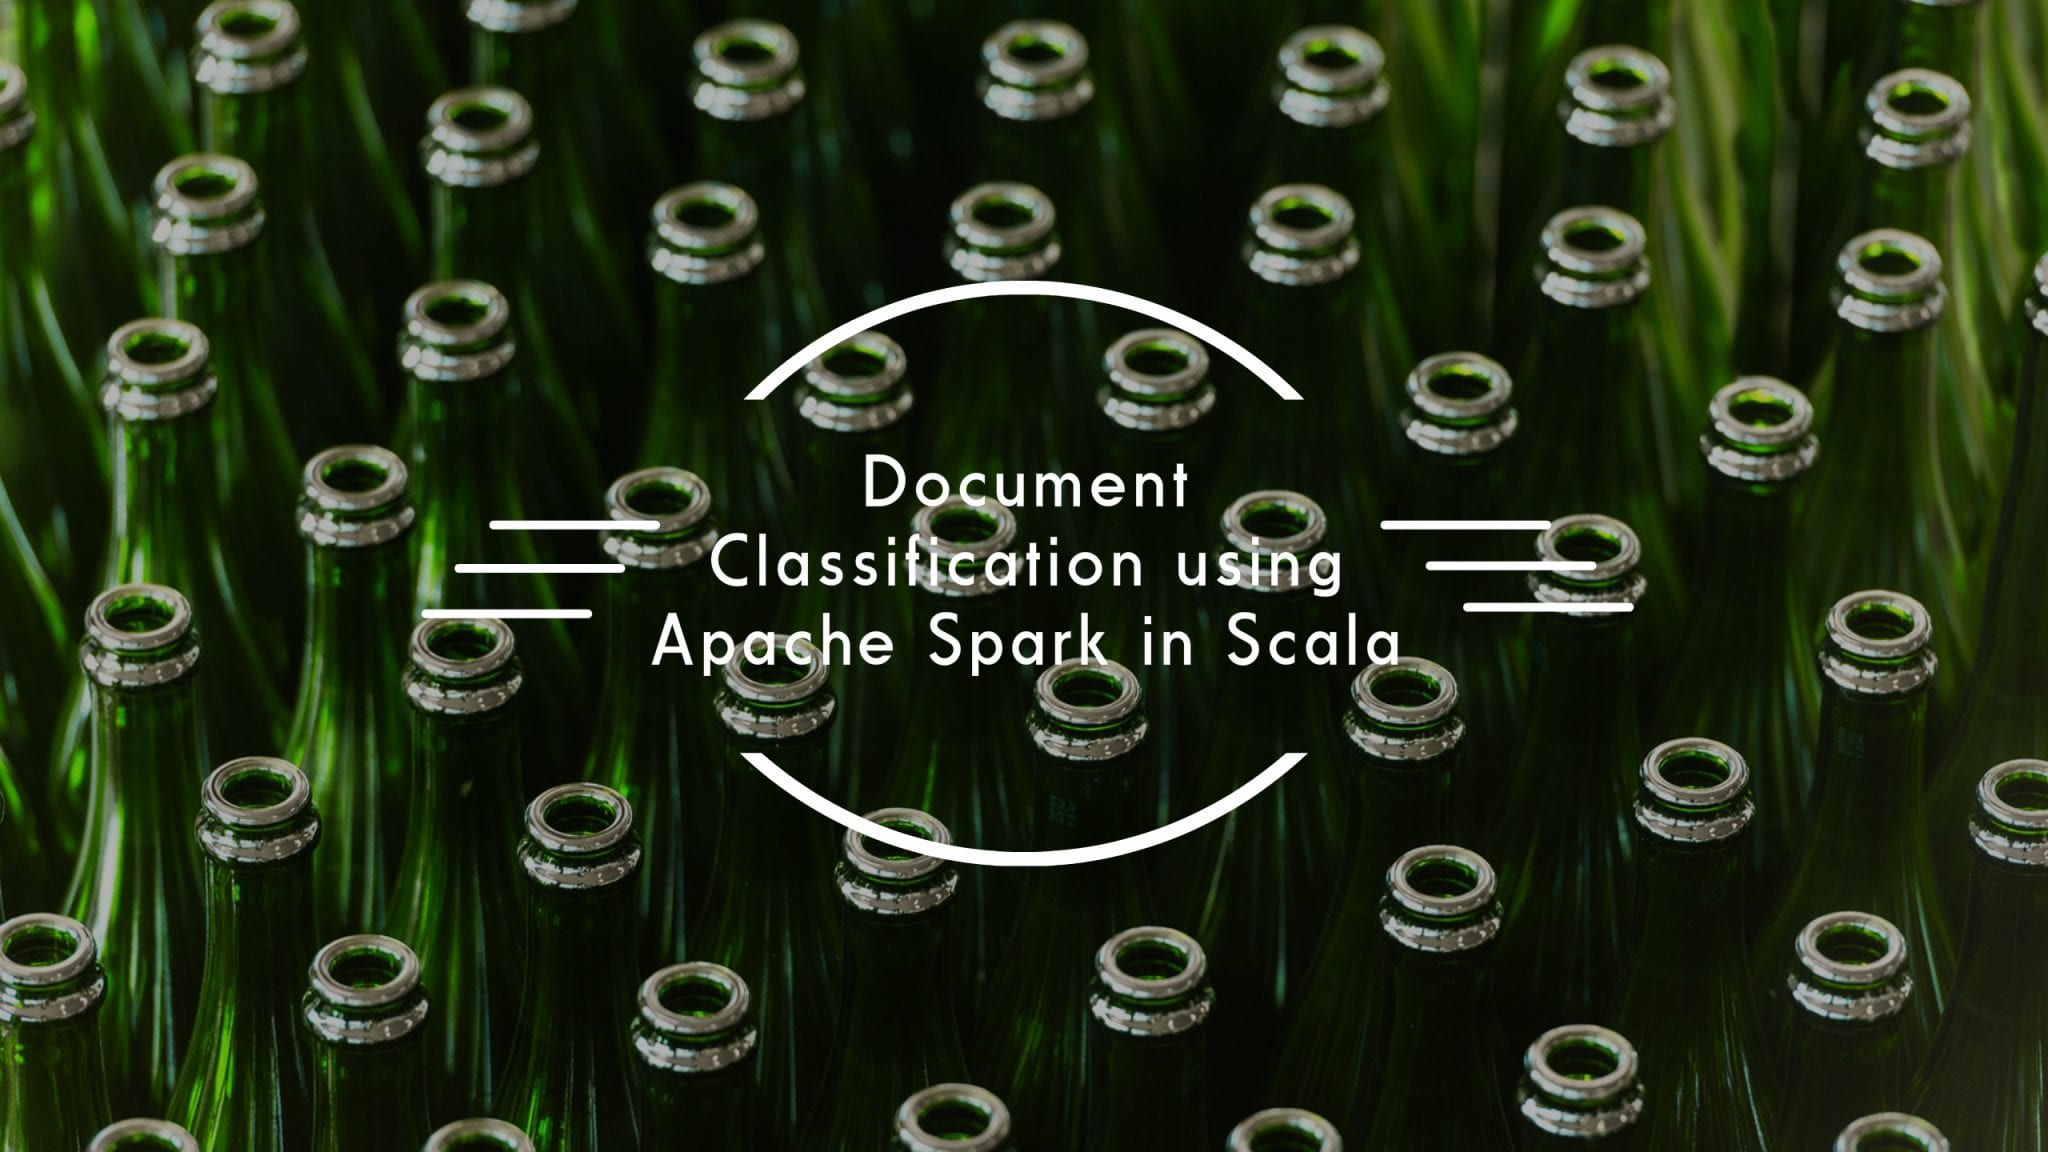 document-classification-using-apache-spark-in-scala